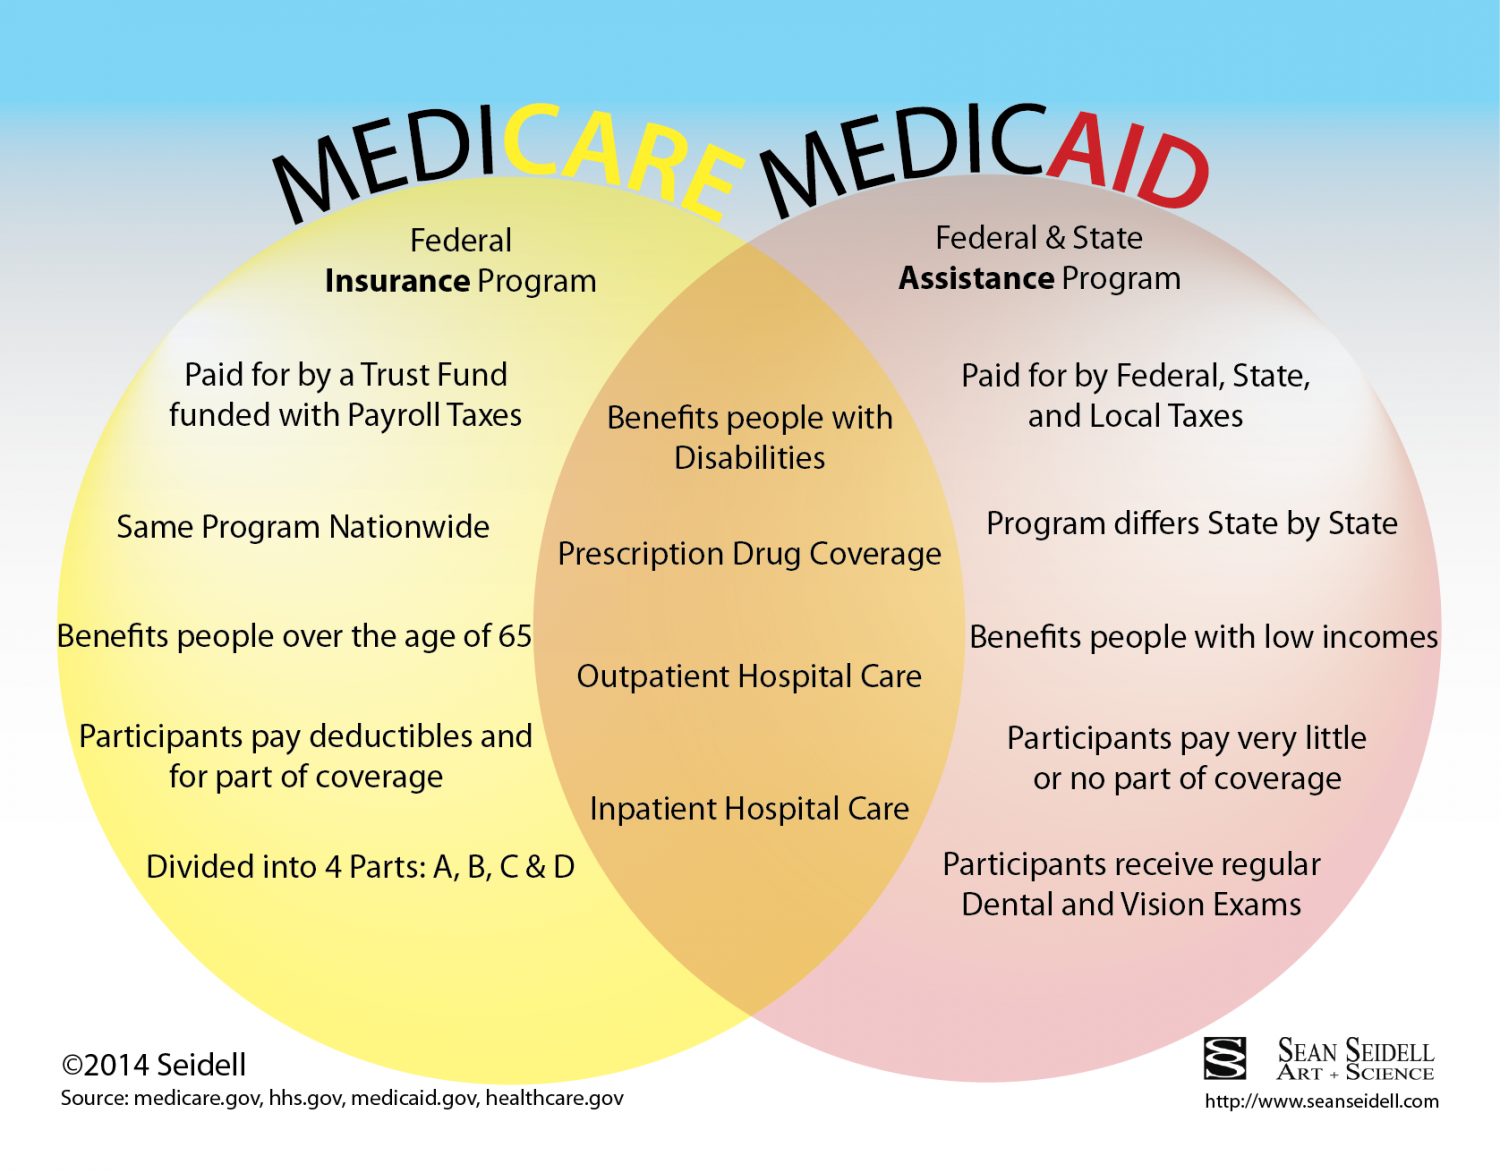 essay about medicare and medicaid What is one of the differences between medicare and medicaid medicaid is funded by the federal government to assure that i get your essay.